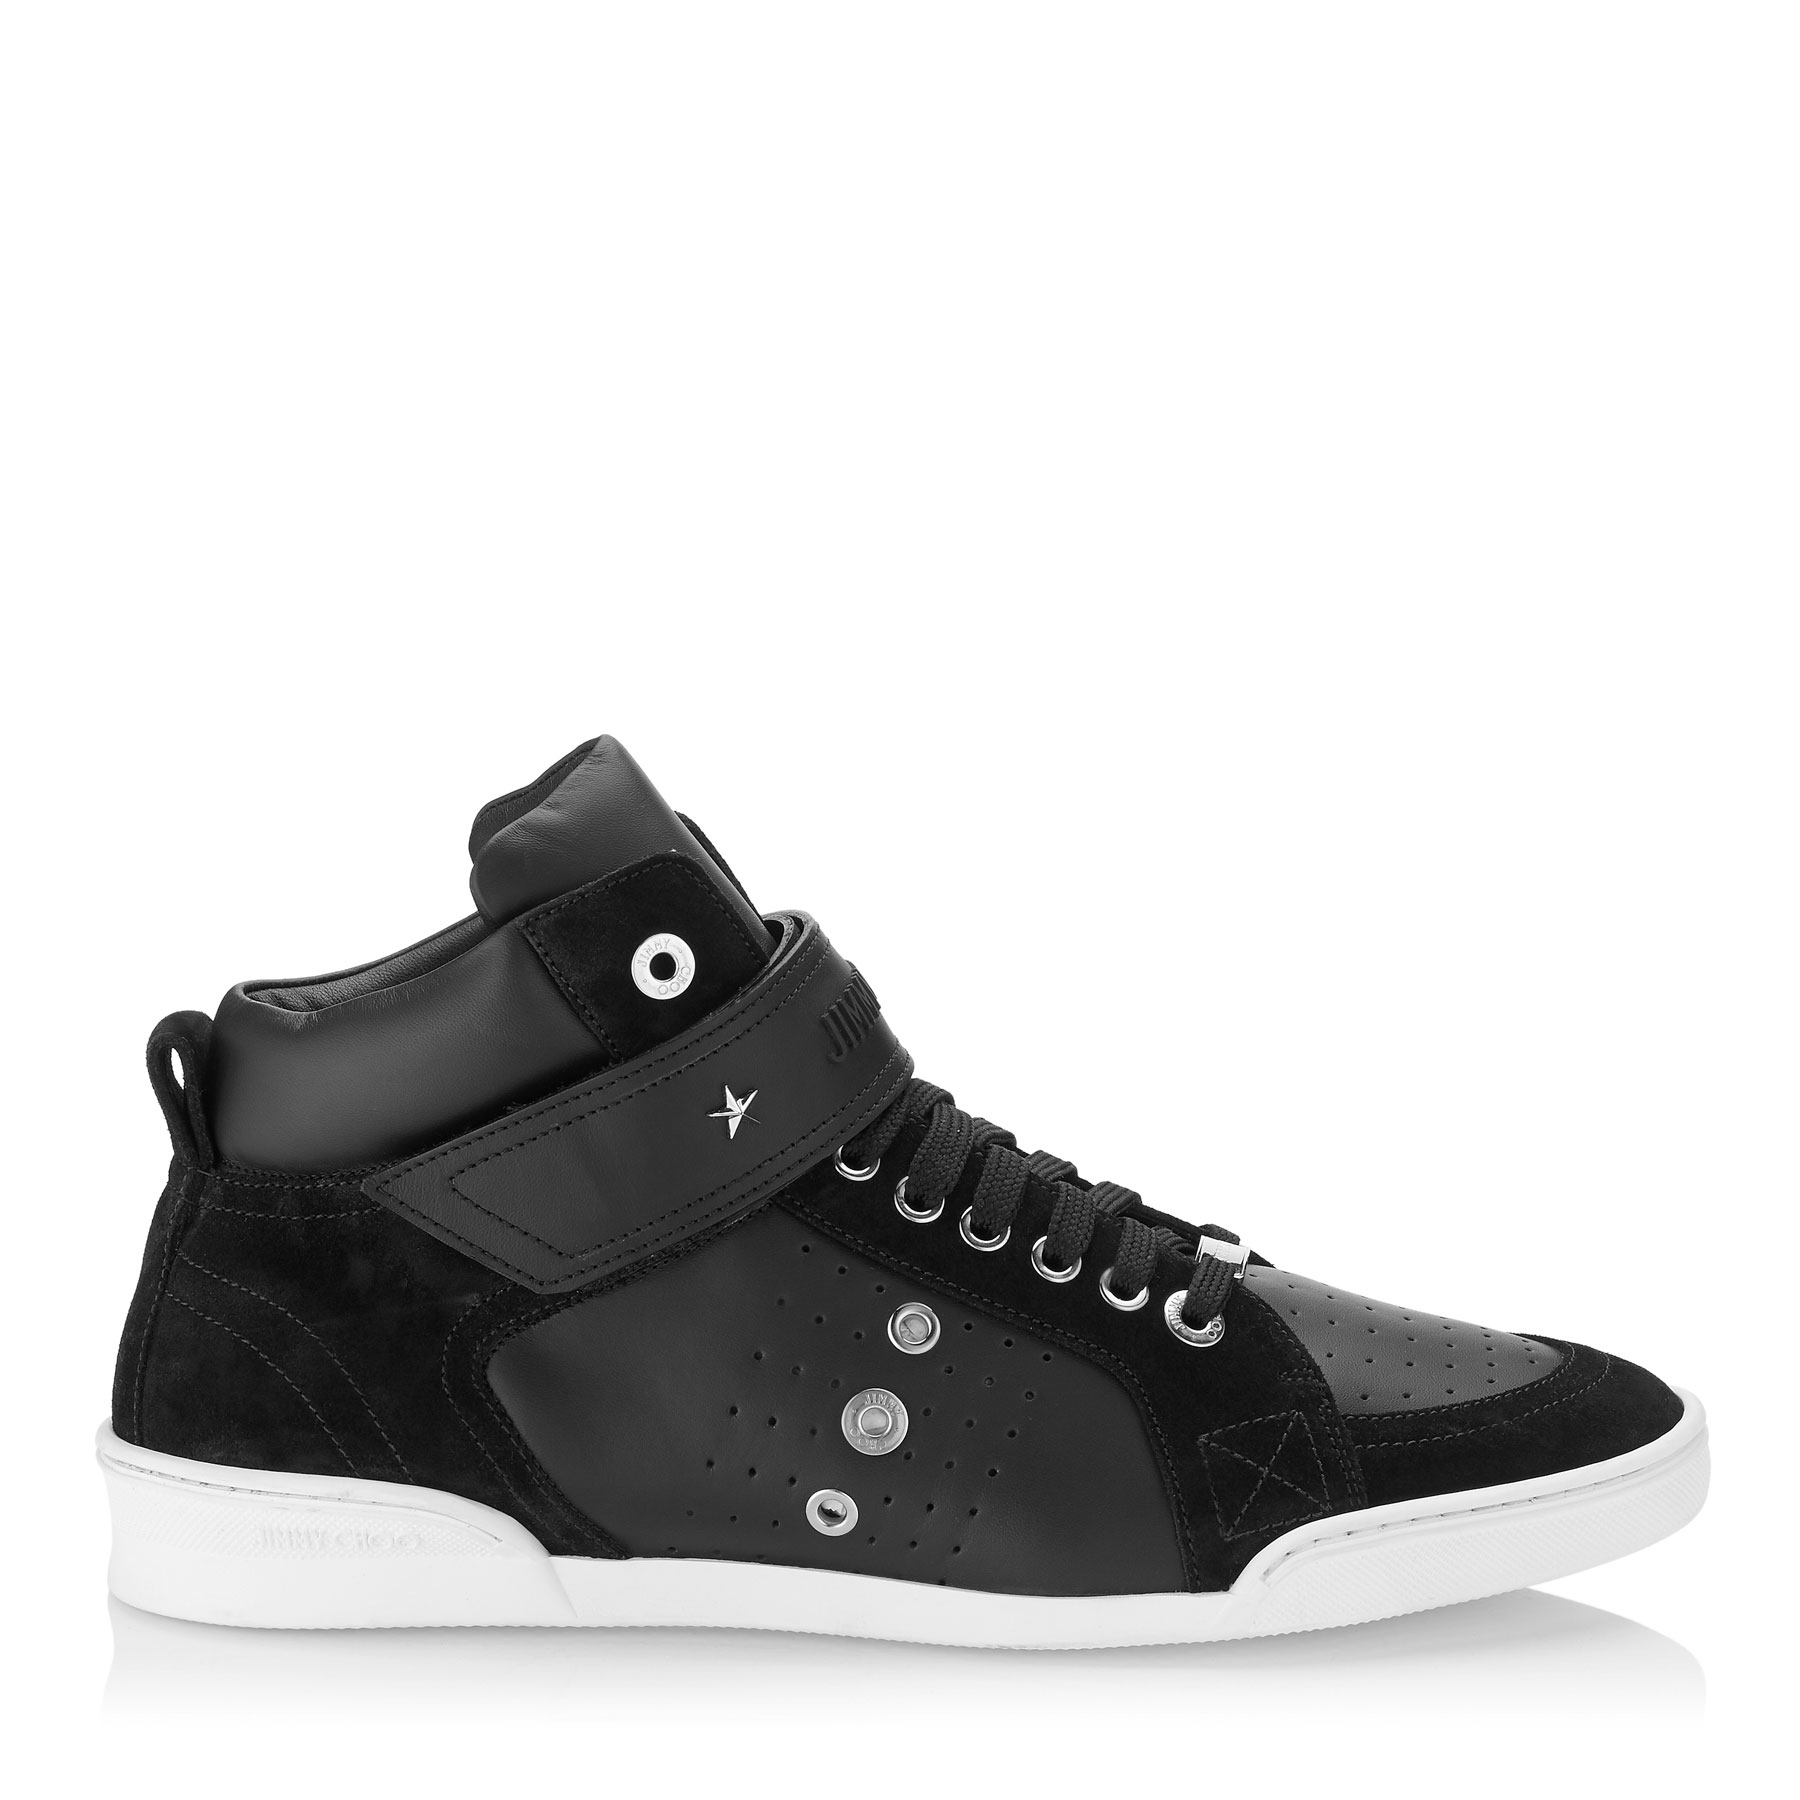 LEWIS Black Sport Calf and Suede Trainers